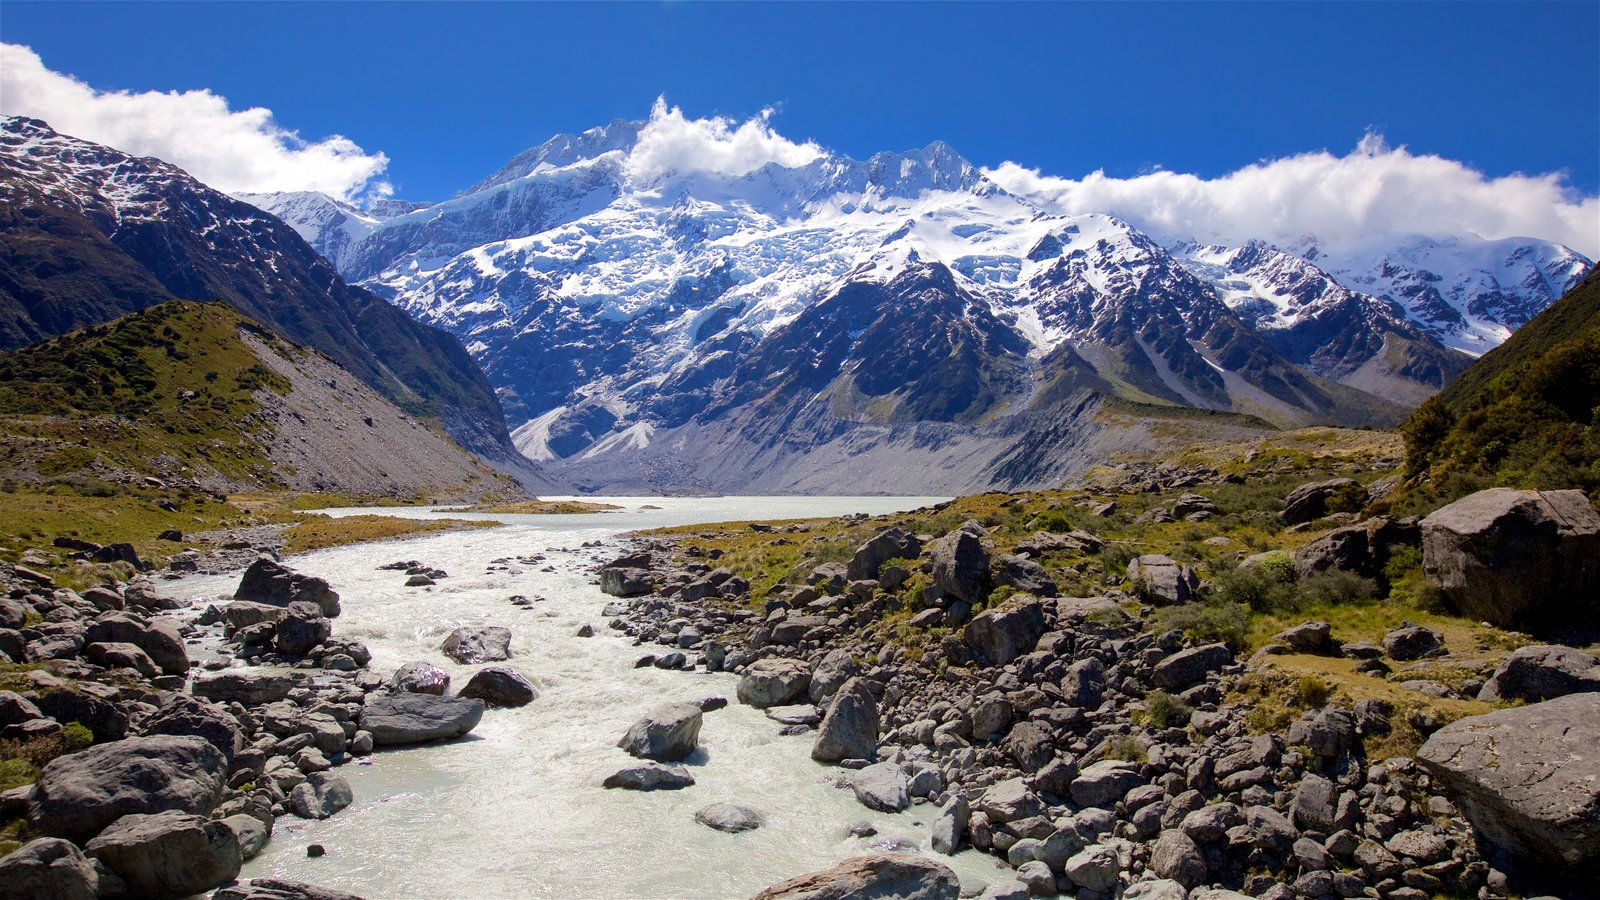 Mount Cook National Park featuring snow, mountains and tranquil scenes